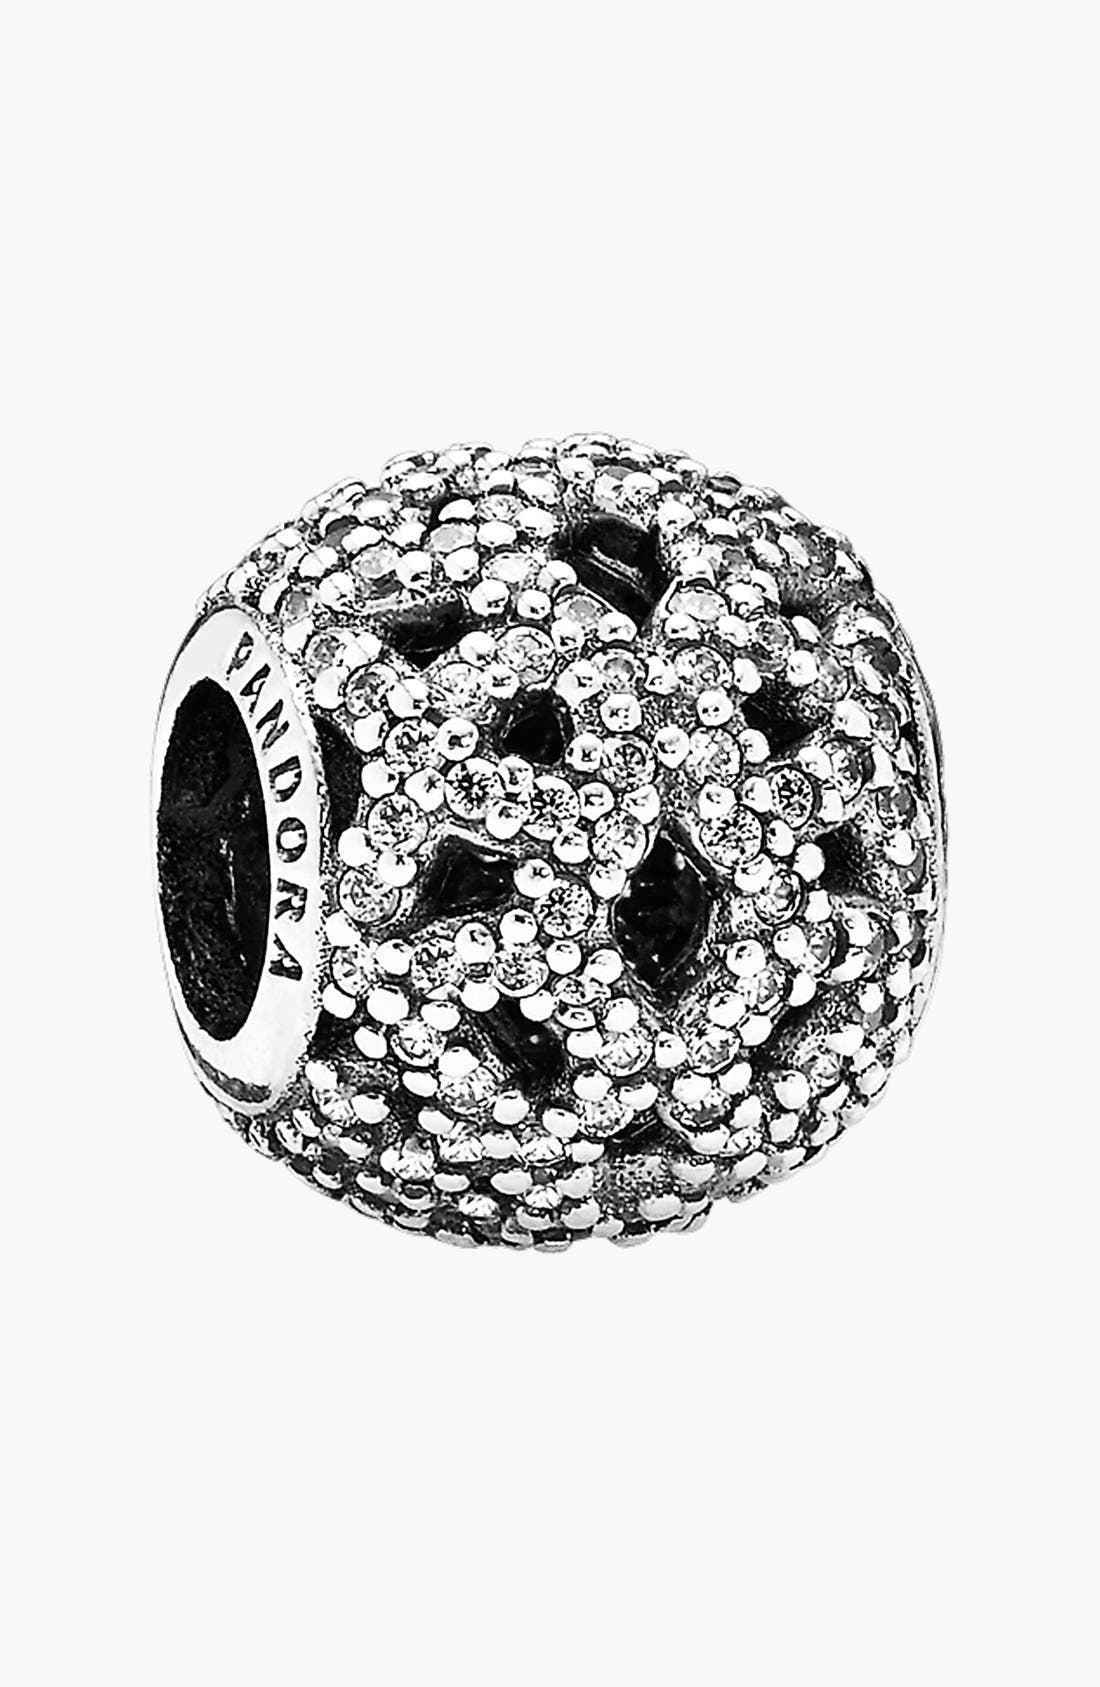 Alternate Image 1 Selected - PANDORA 'Shimmering Lace' Open Bead Charm